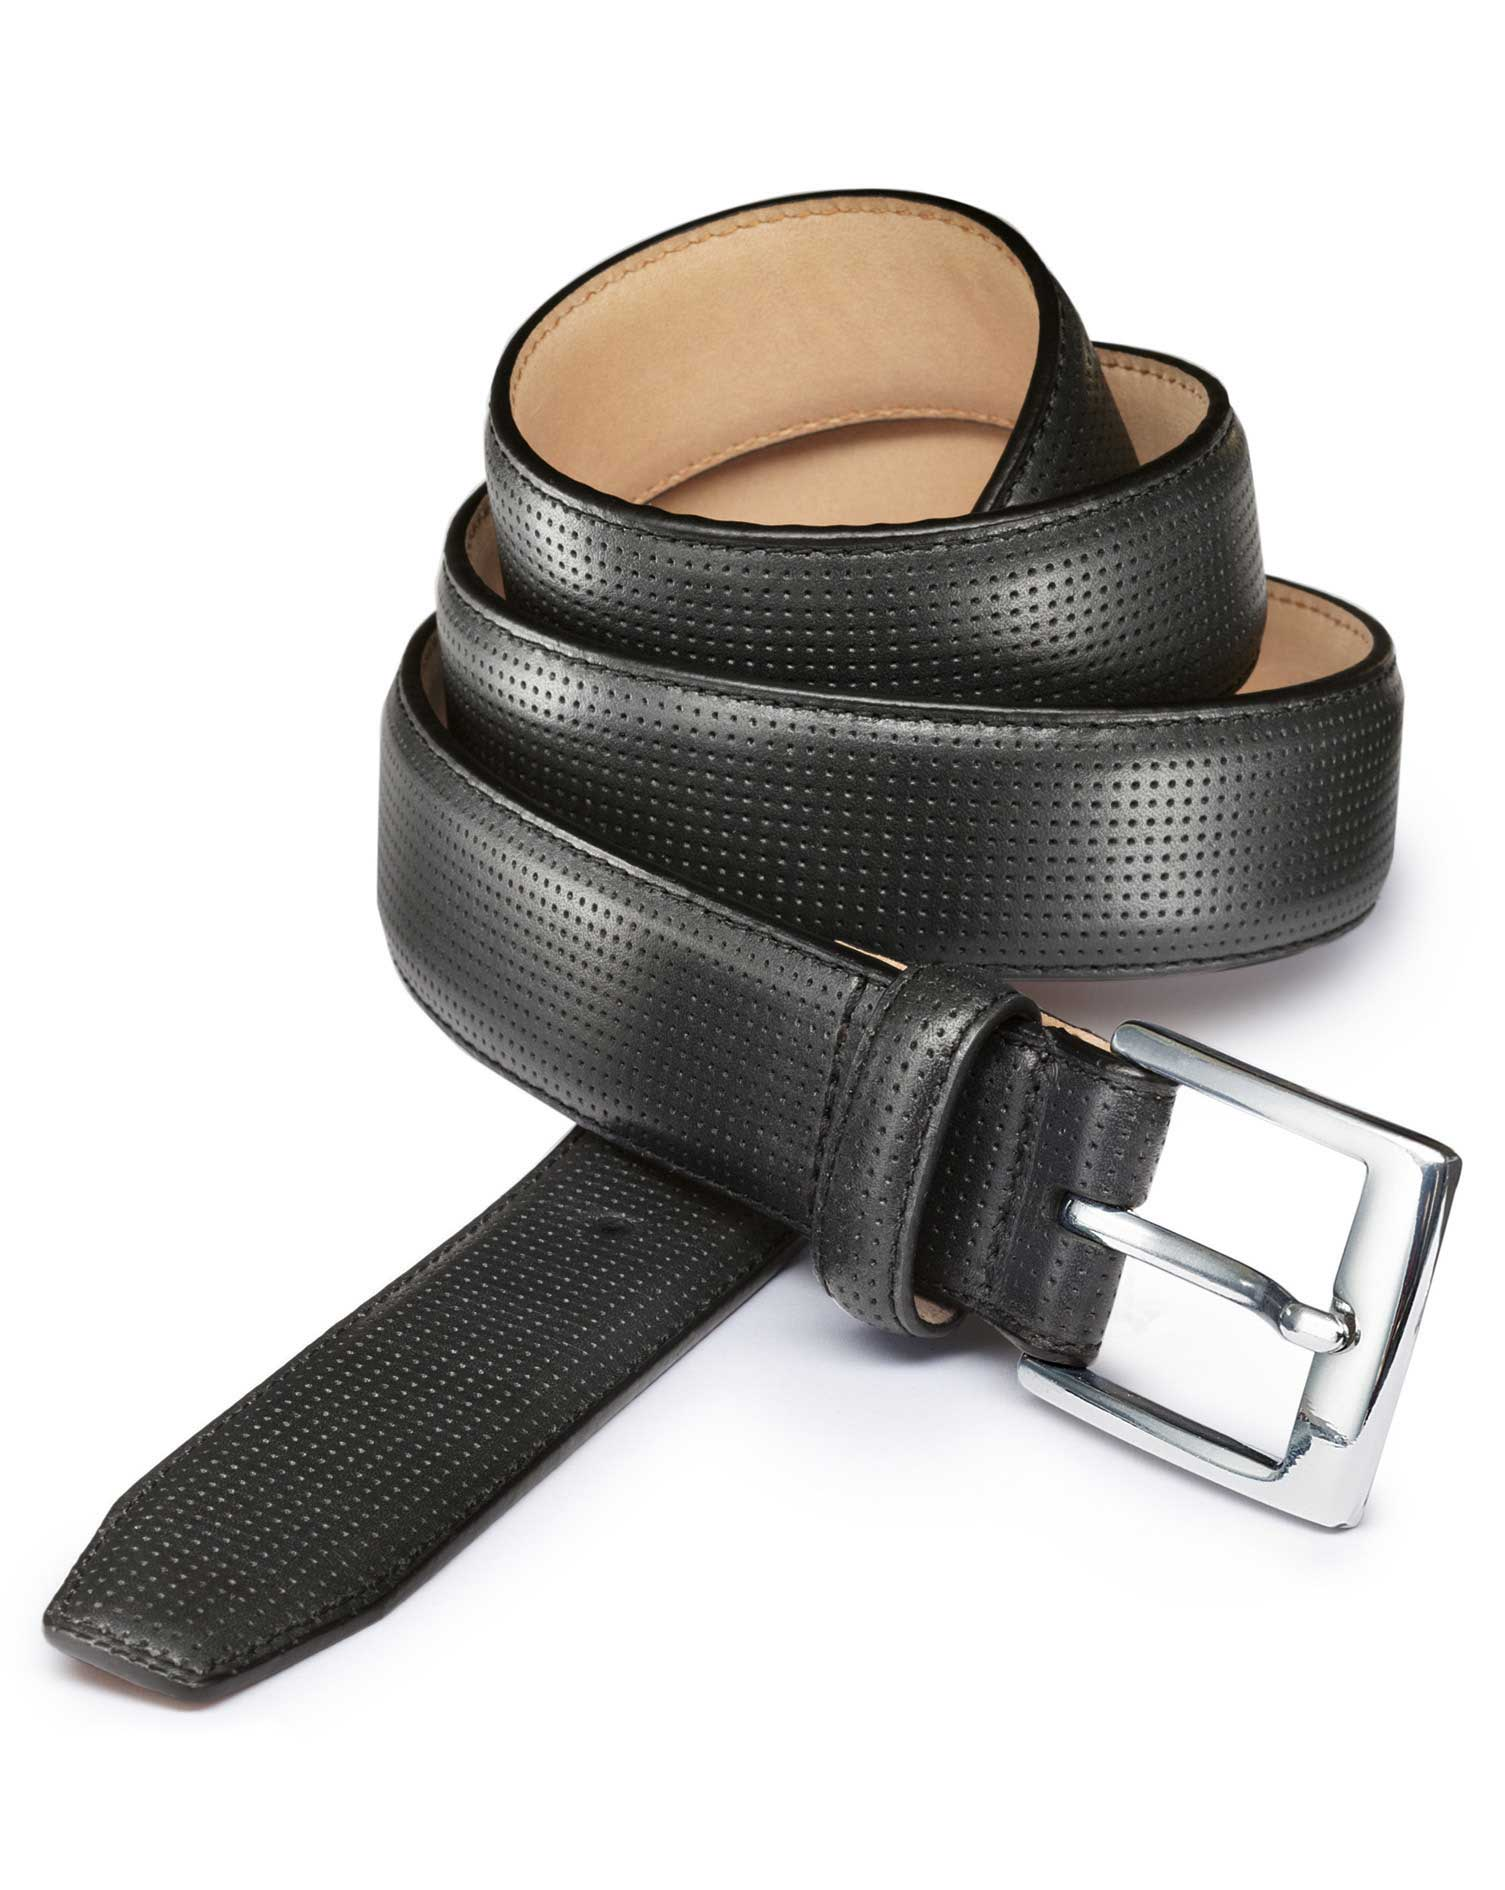 Black Perforated Leather Belt Size 30-32 by Charles Tyrwhitt